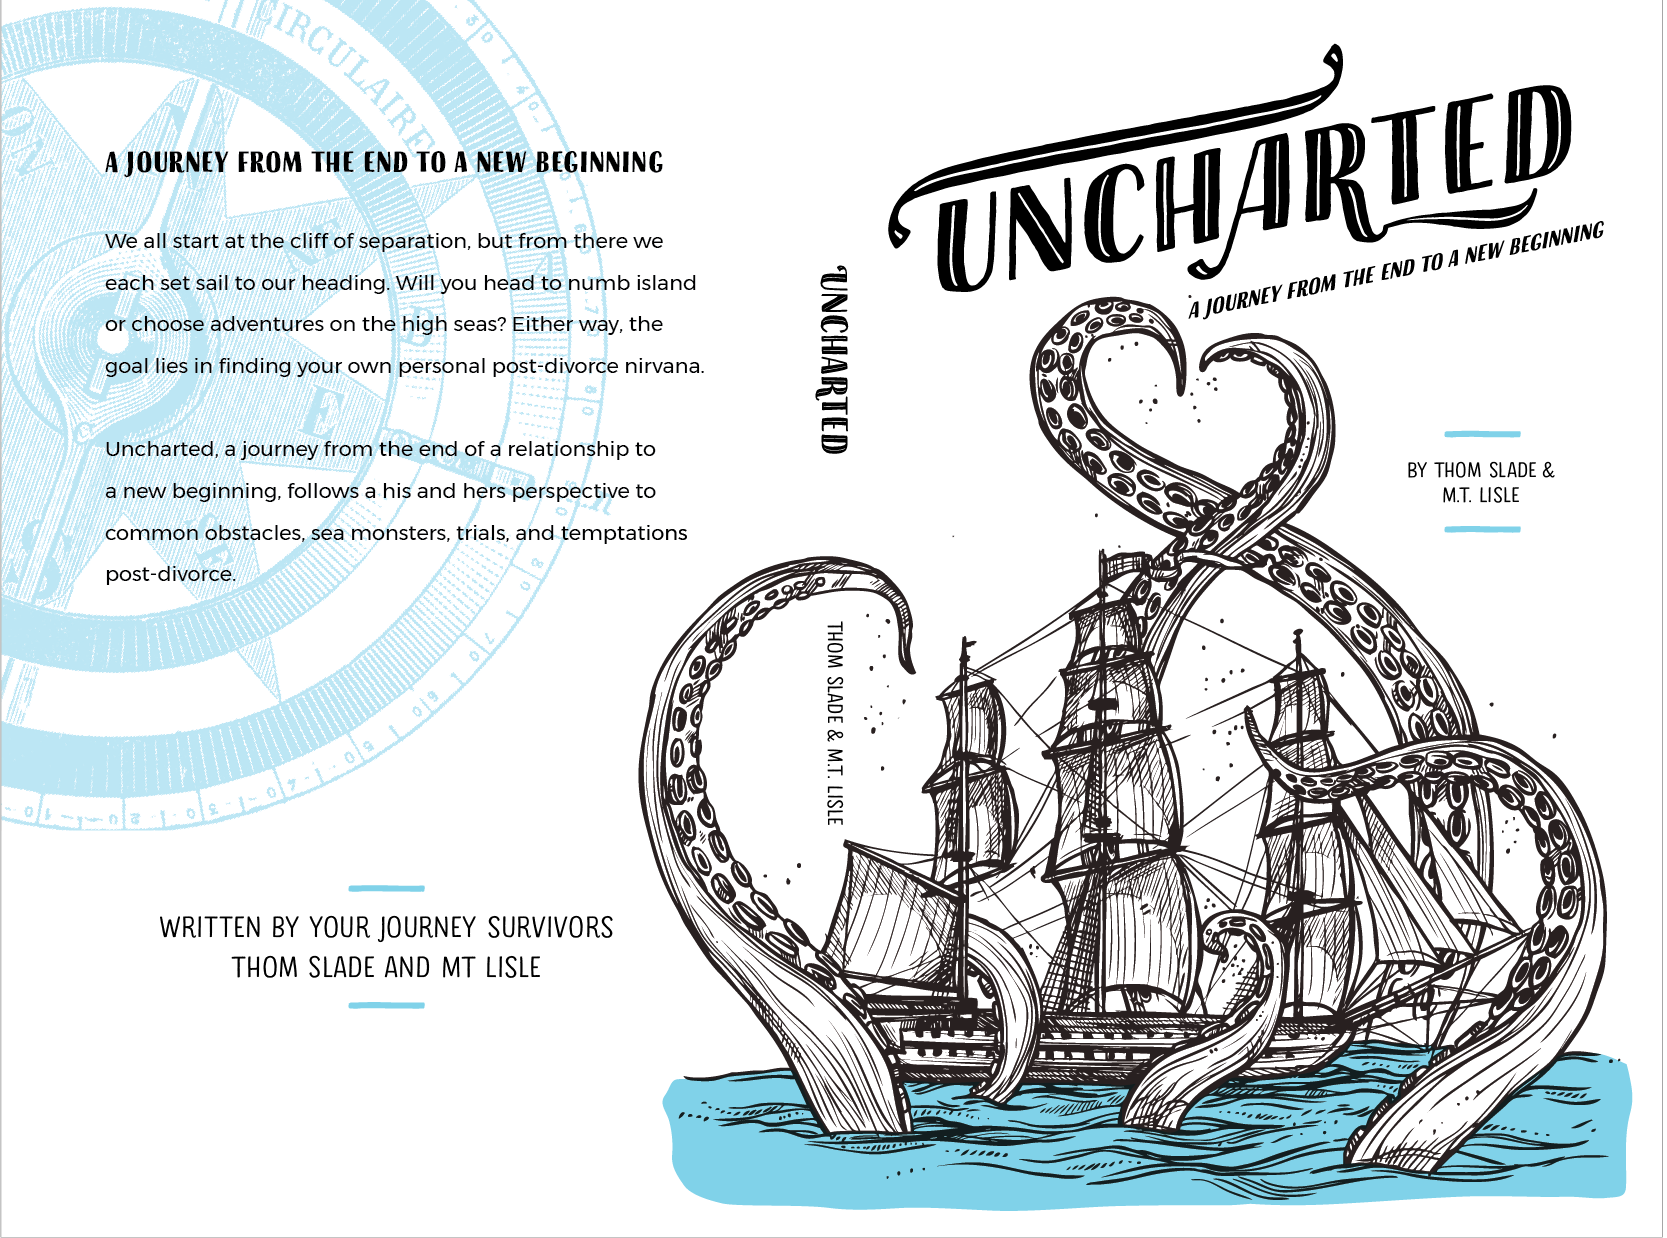 Uncharted: a Journey from the End to a New Beginning